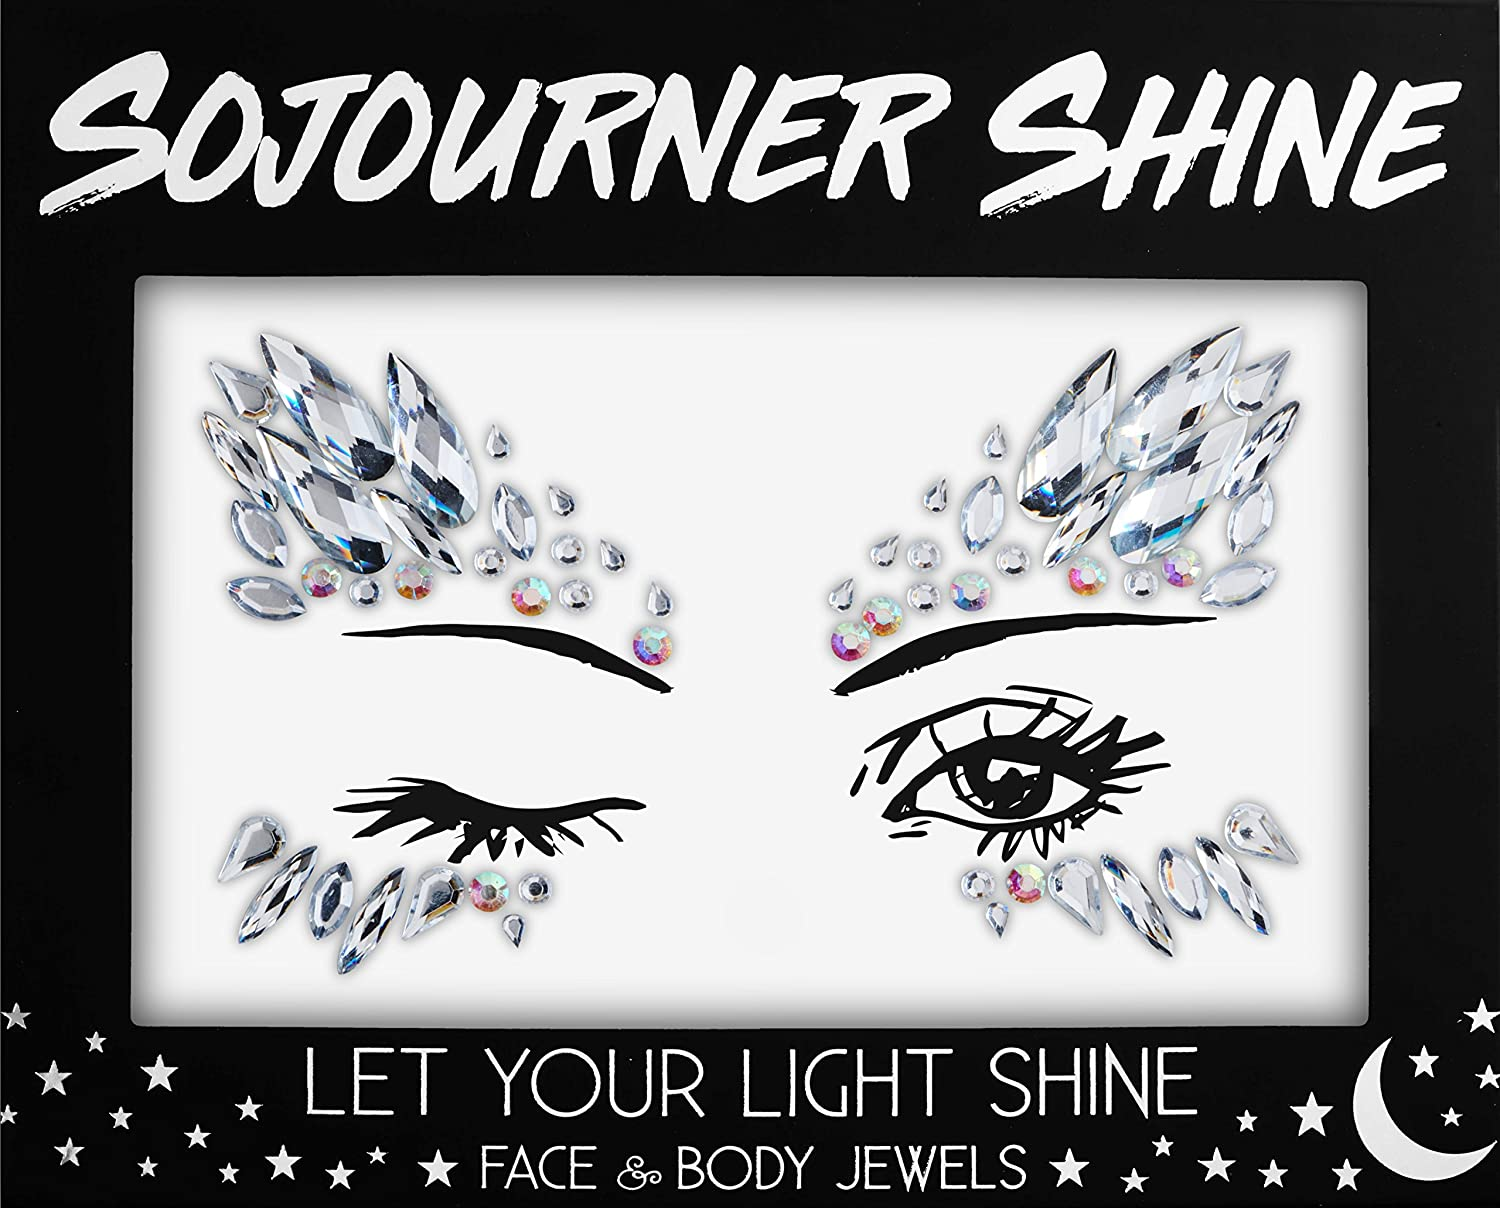 Face Jewels Glitter Gems Rhinestones – Eye Body Jewels Gems | Rhinestone Stickers | Body Glitter Festival Rave & Party Accessories by SoJourner (Midnight Goddess) SoJourner Bags